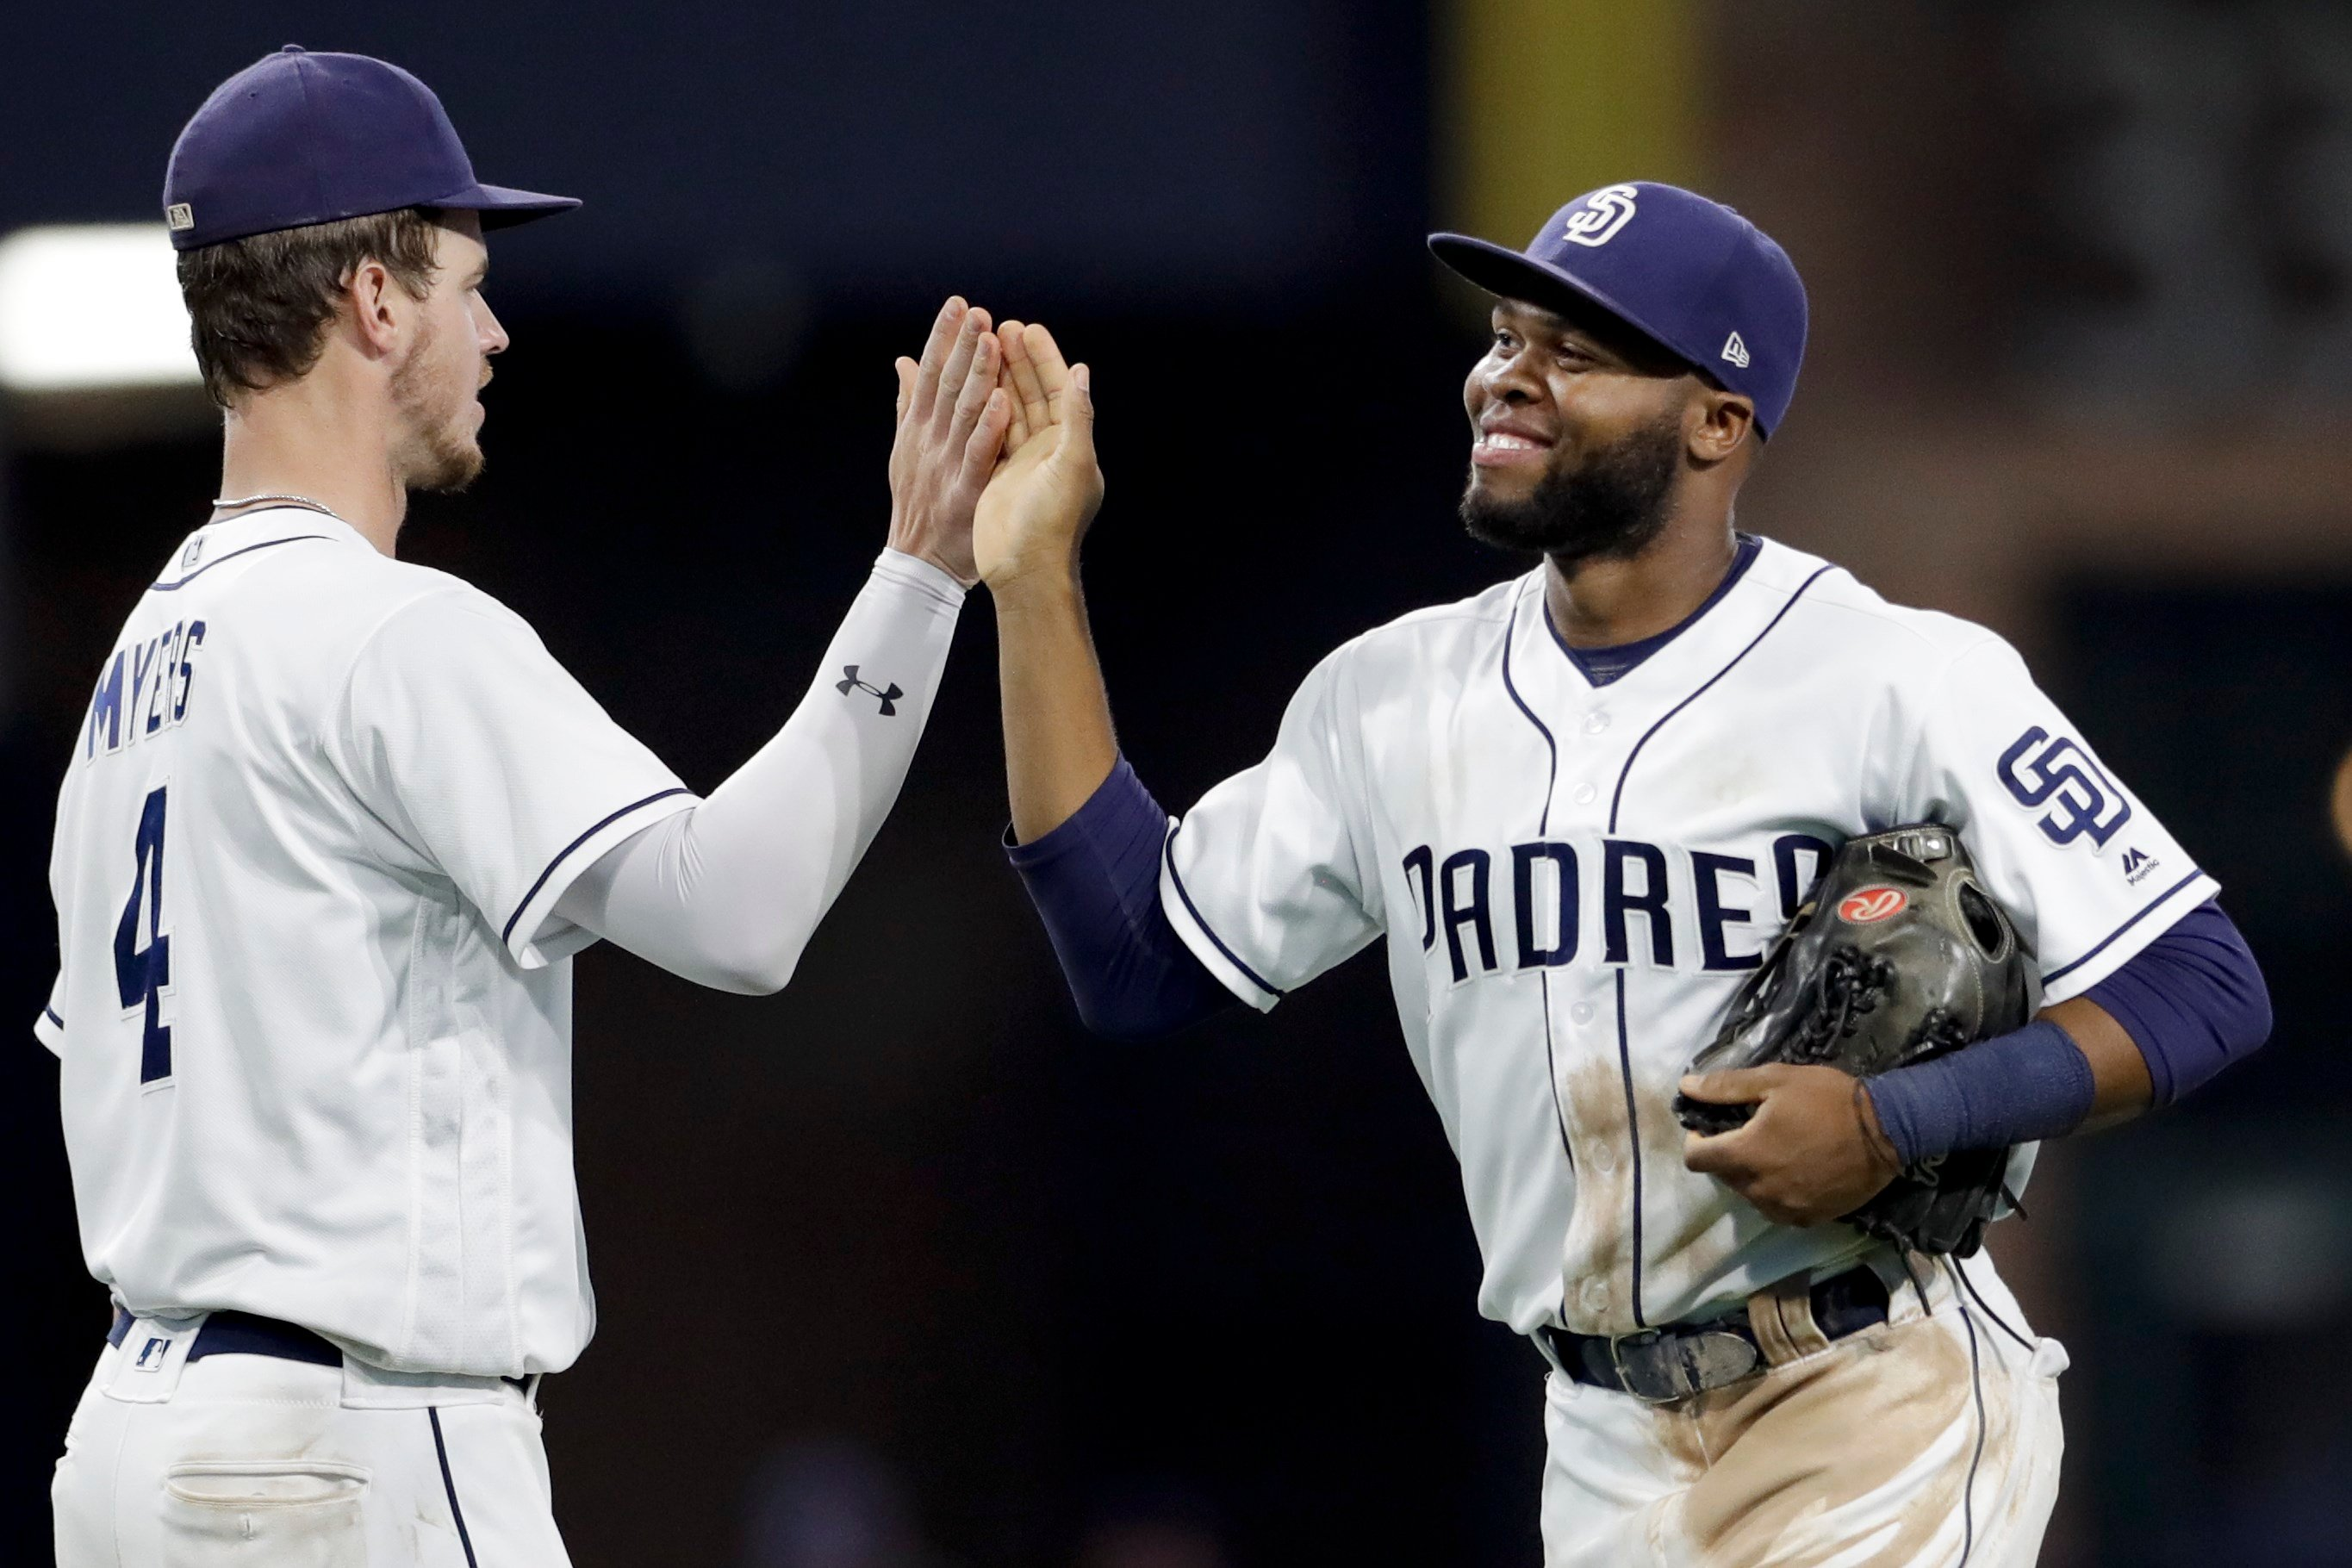 San Diego Padres center fielder Manuel Margot, right, celebrates with first baseman Wil Myers after the Padres defeated the New York Mets 7-5 in a baseball game Thursday, July 27, 2017, in San Diego. (AP Photo/Gregory Bull)